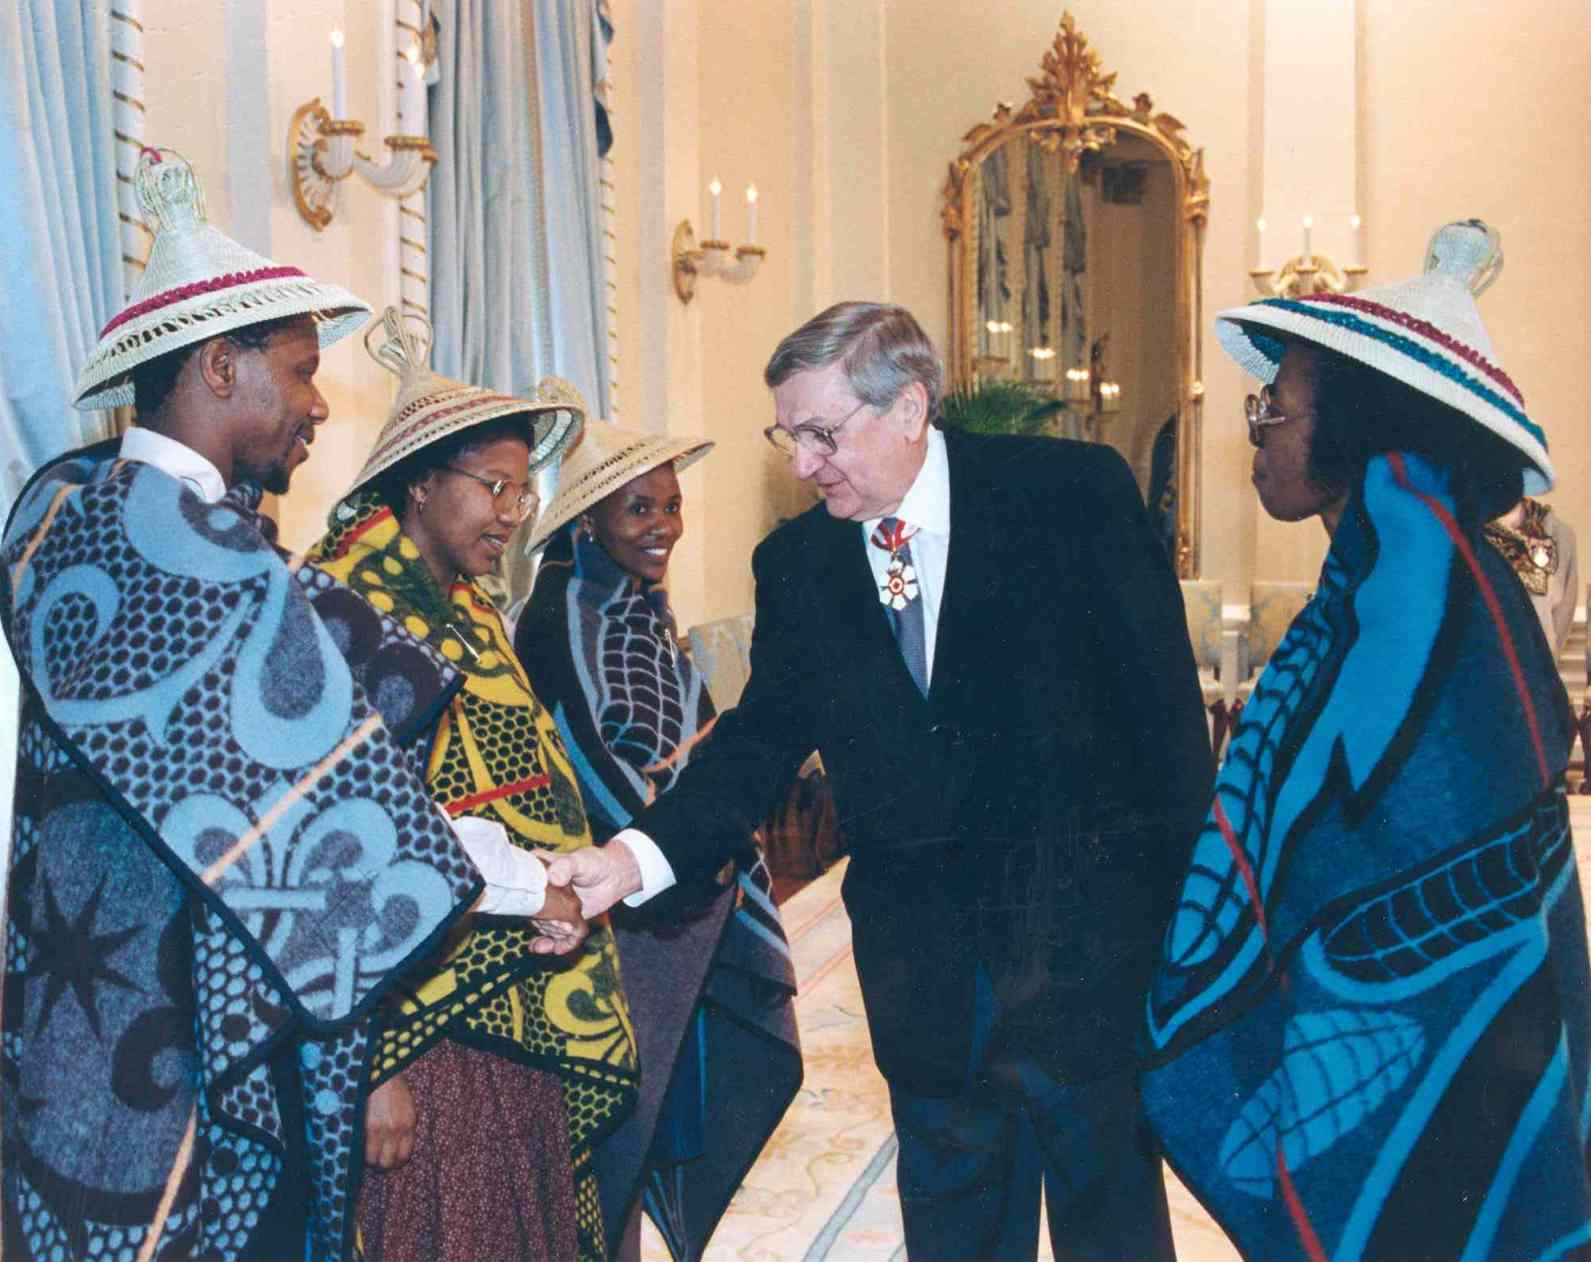 Governor General Roméo LeBlanc welcomes the new high commissioner from Lesotho, Gwendoline Malaheha, and her staff. Date: May 16, 1995. Photographer: Sgt Michel Roy, Rideau Hall. Reference: GGC95-339-31.